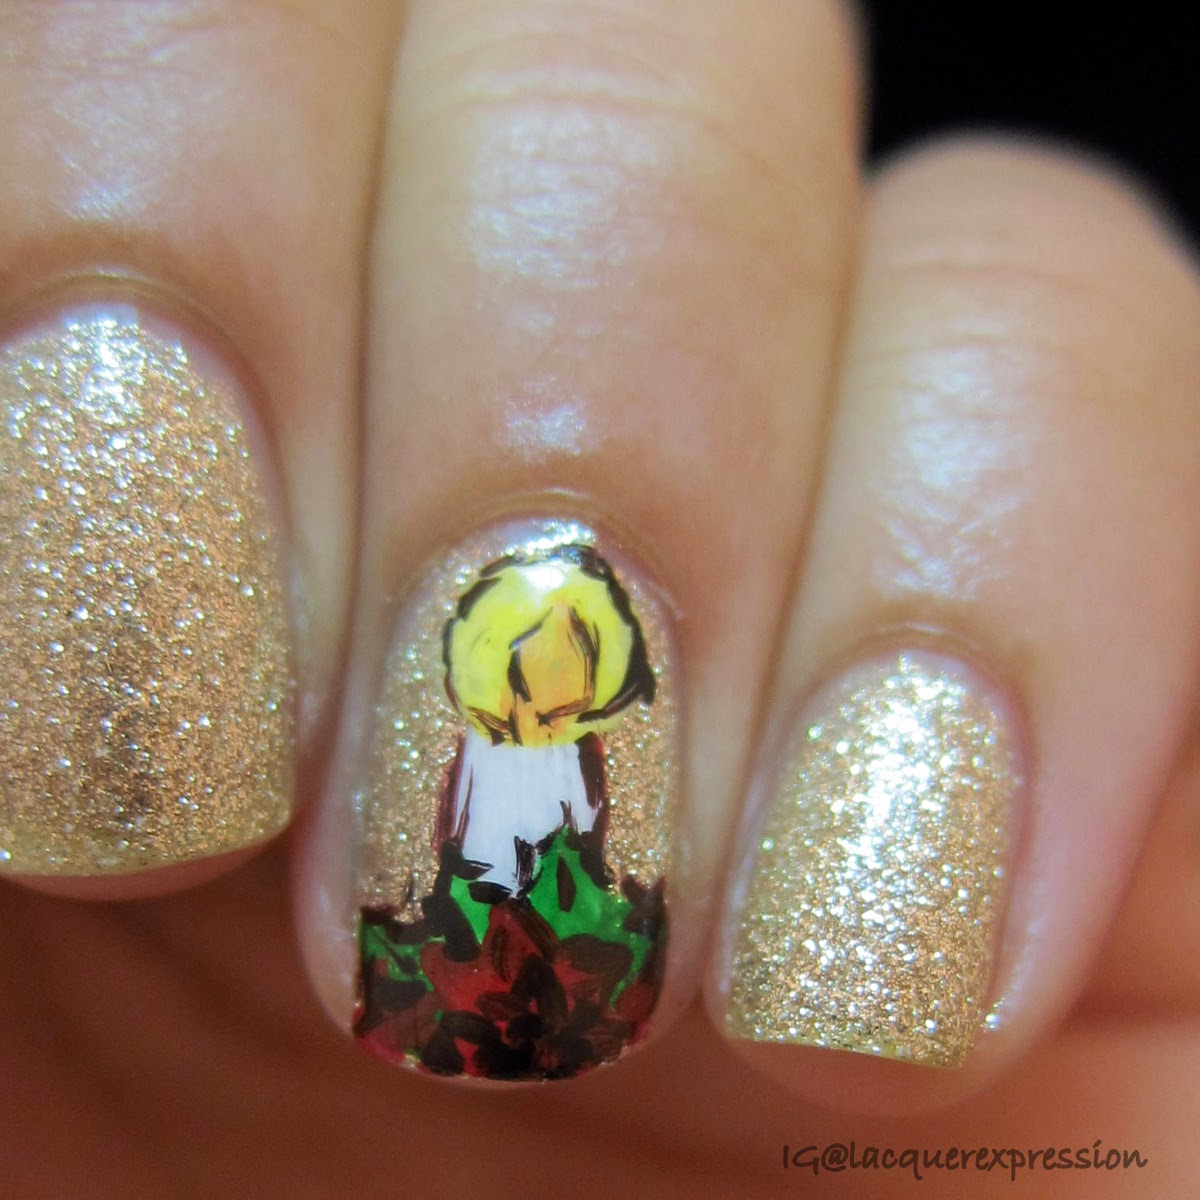 White candle and poinsettia nail art over Zoya Tomoko